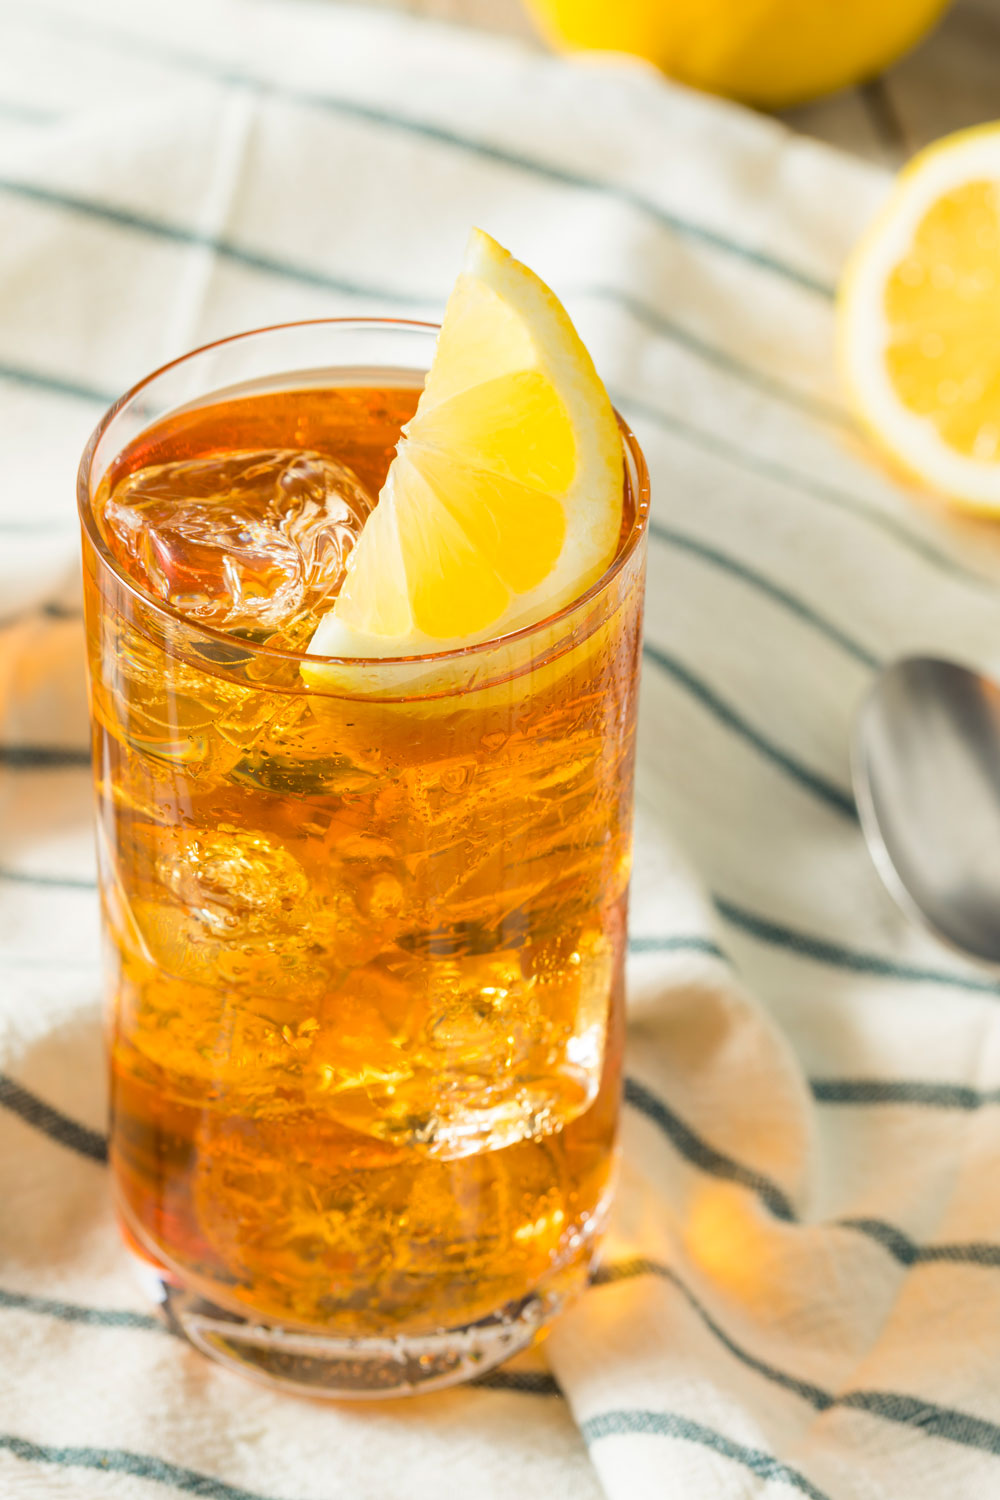 iced tea almost scrapped but first party data led to a different insight